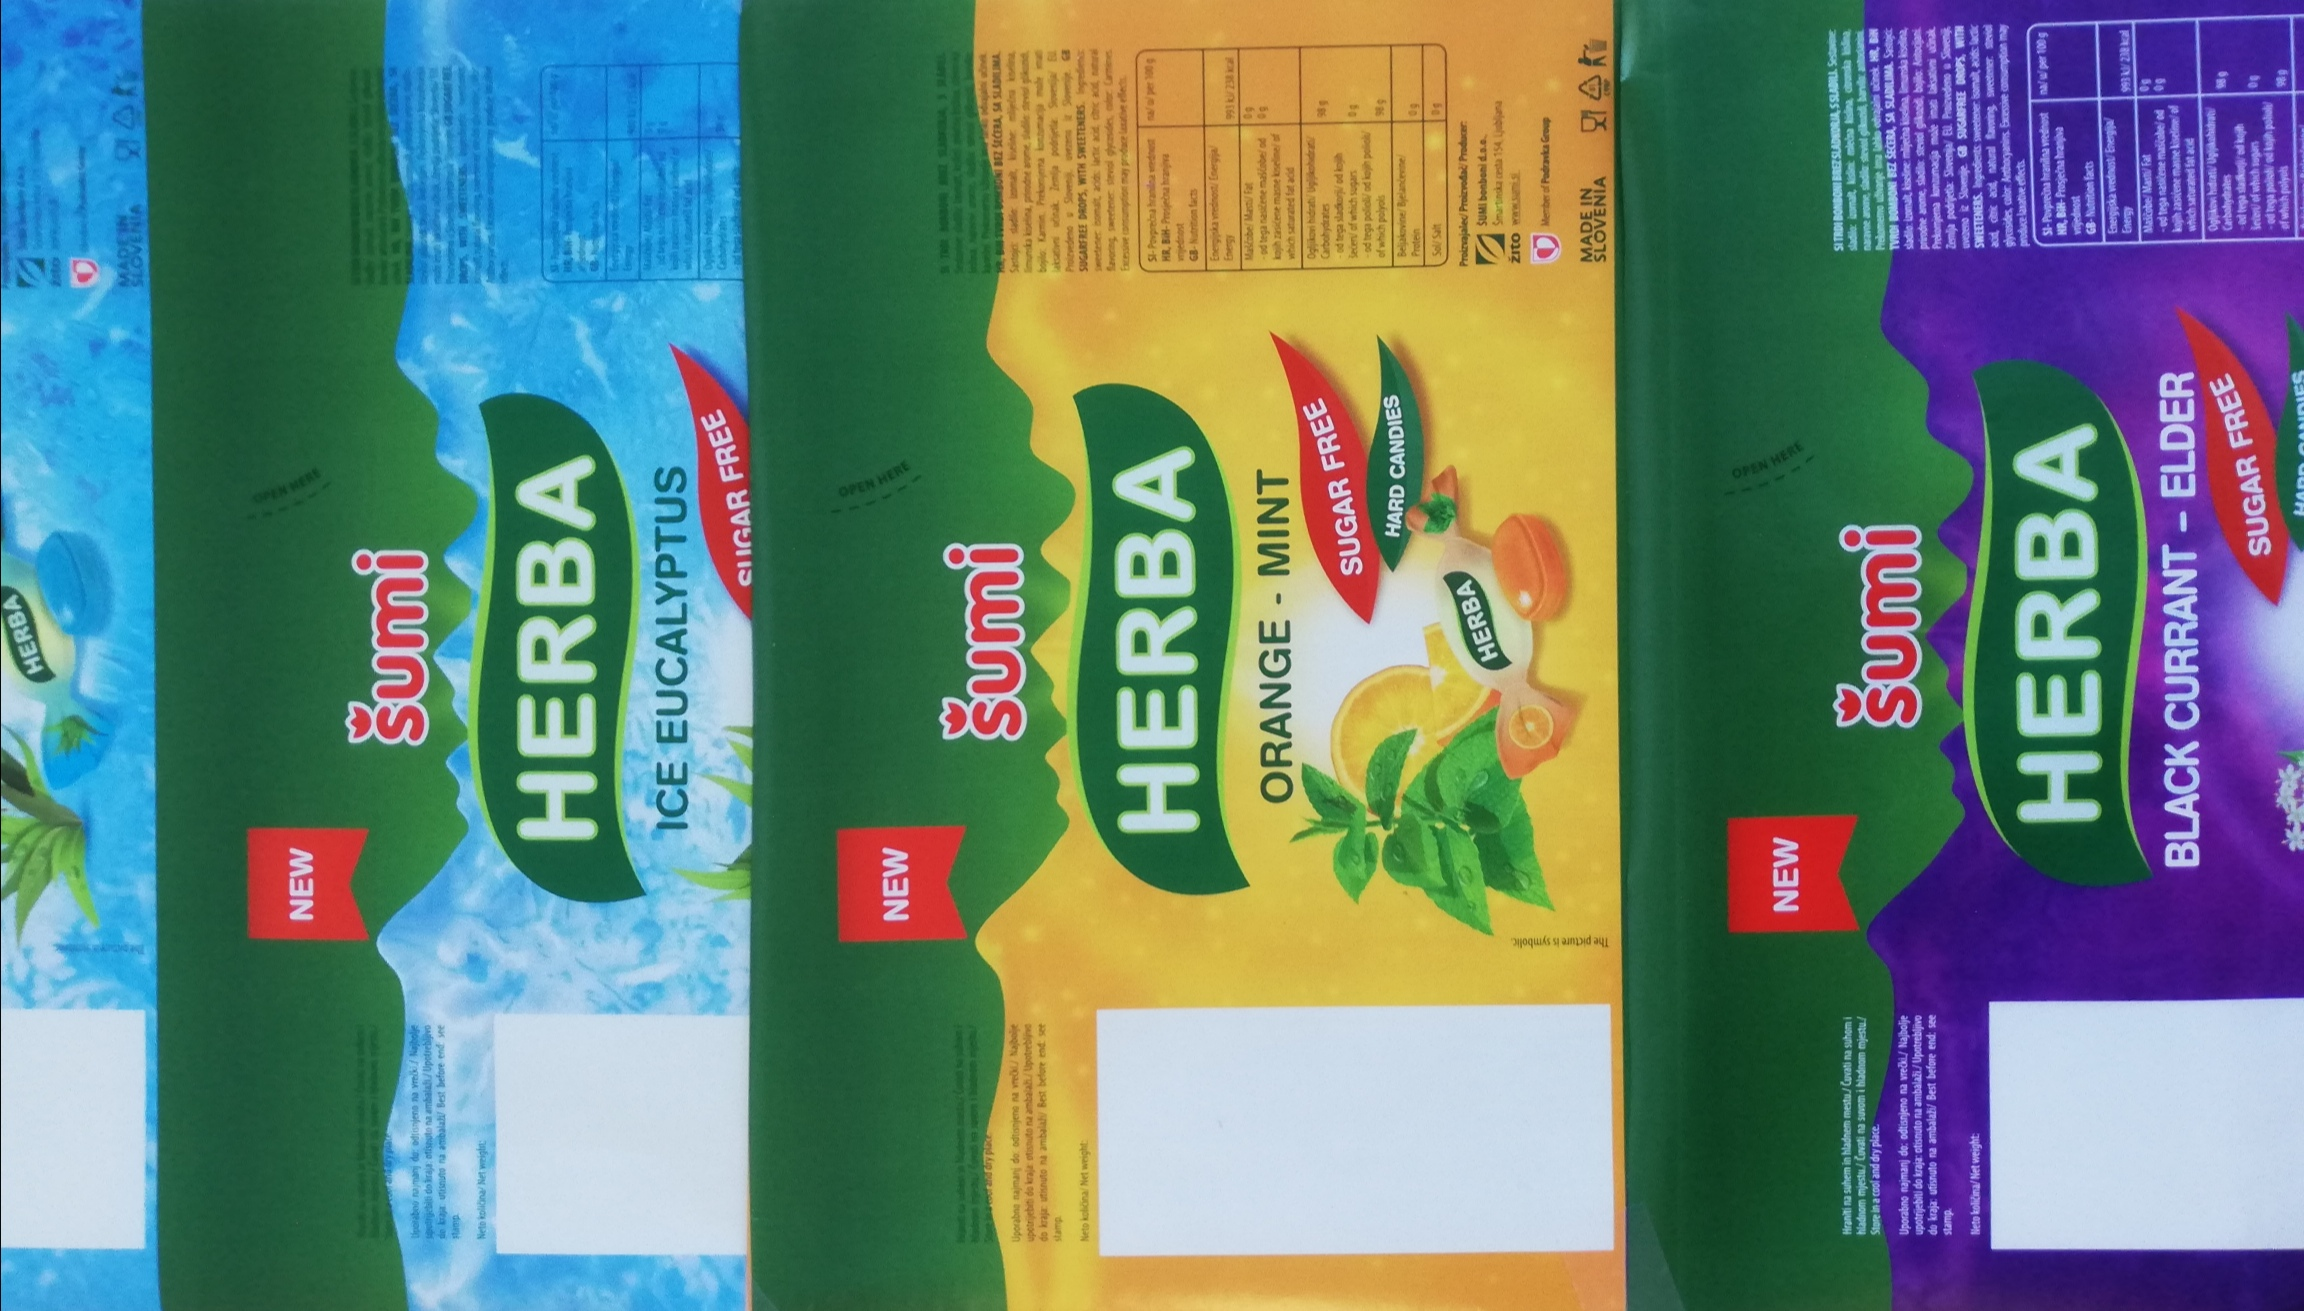 The legendary Šumi´s Herba has more environmentally friendly packaging